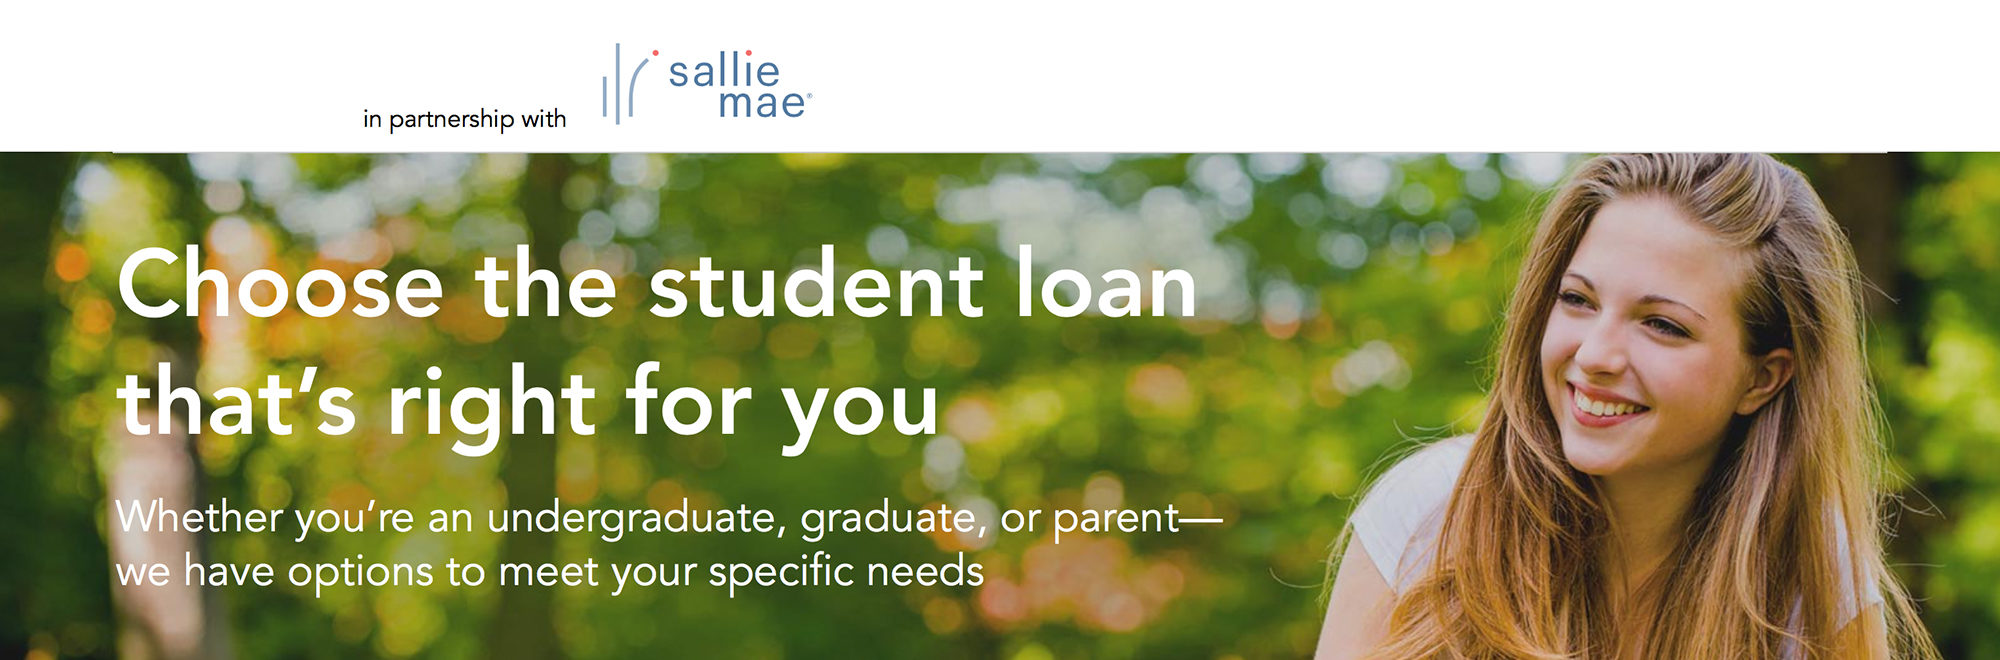 """Image of a girl sitting in front of trees with text reading, """"Choose the student loan that's right for you"""""""